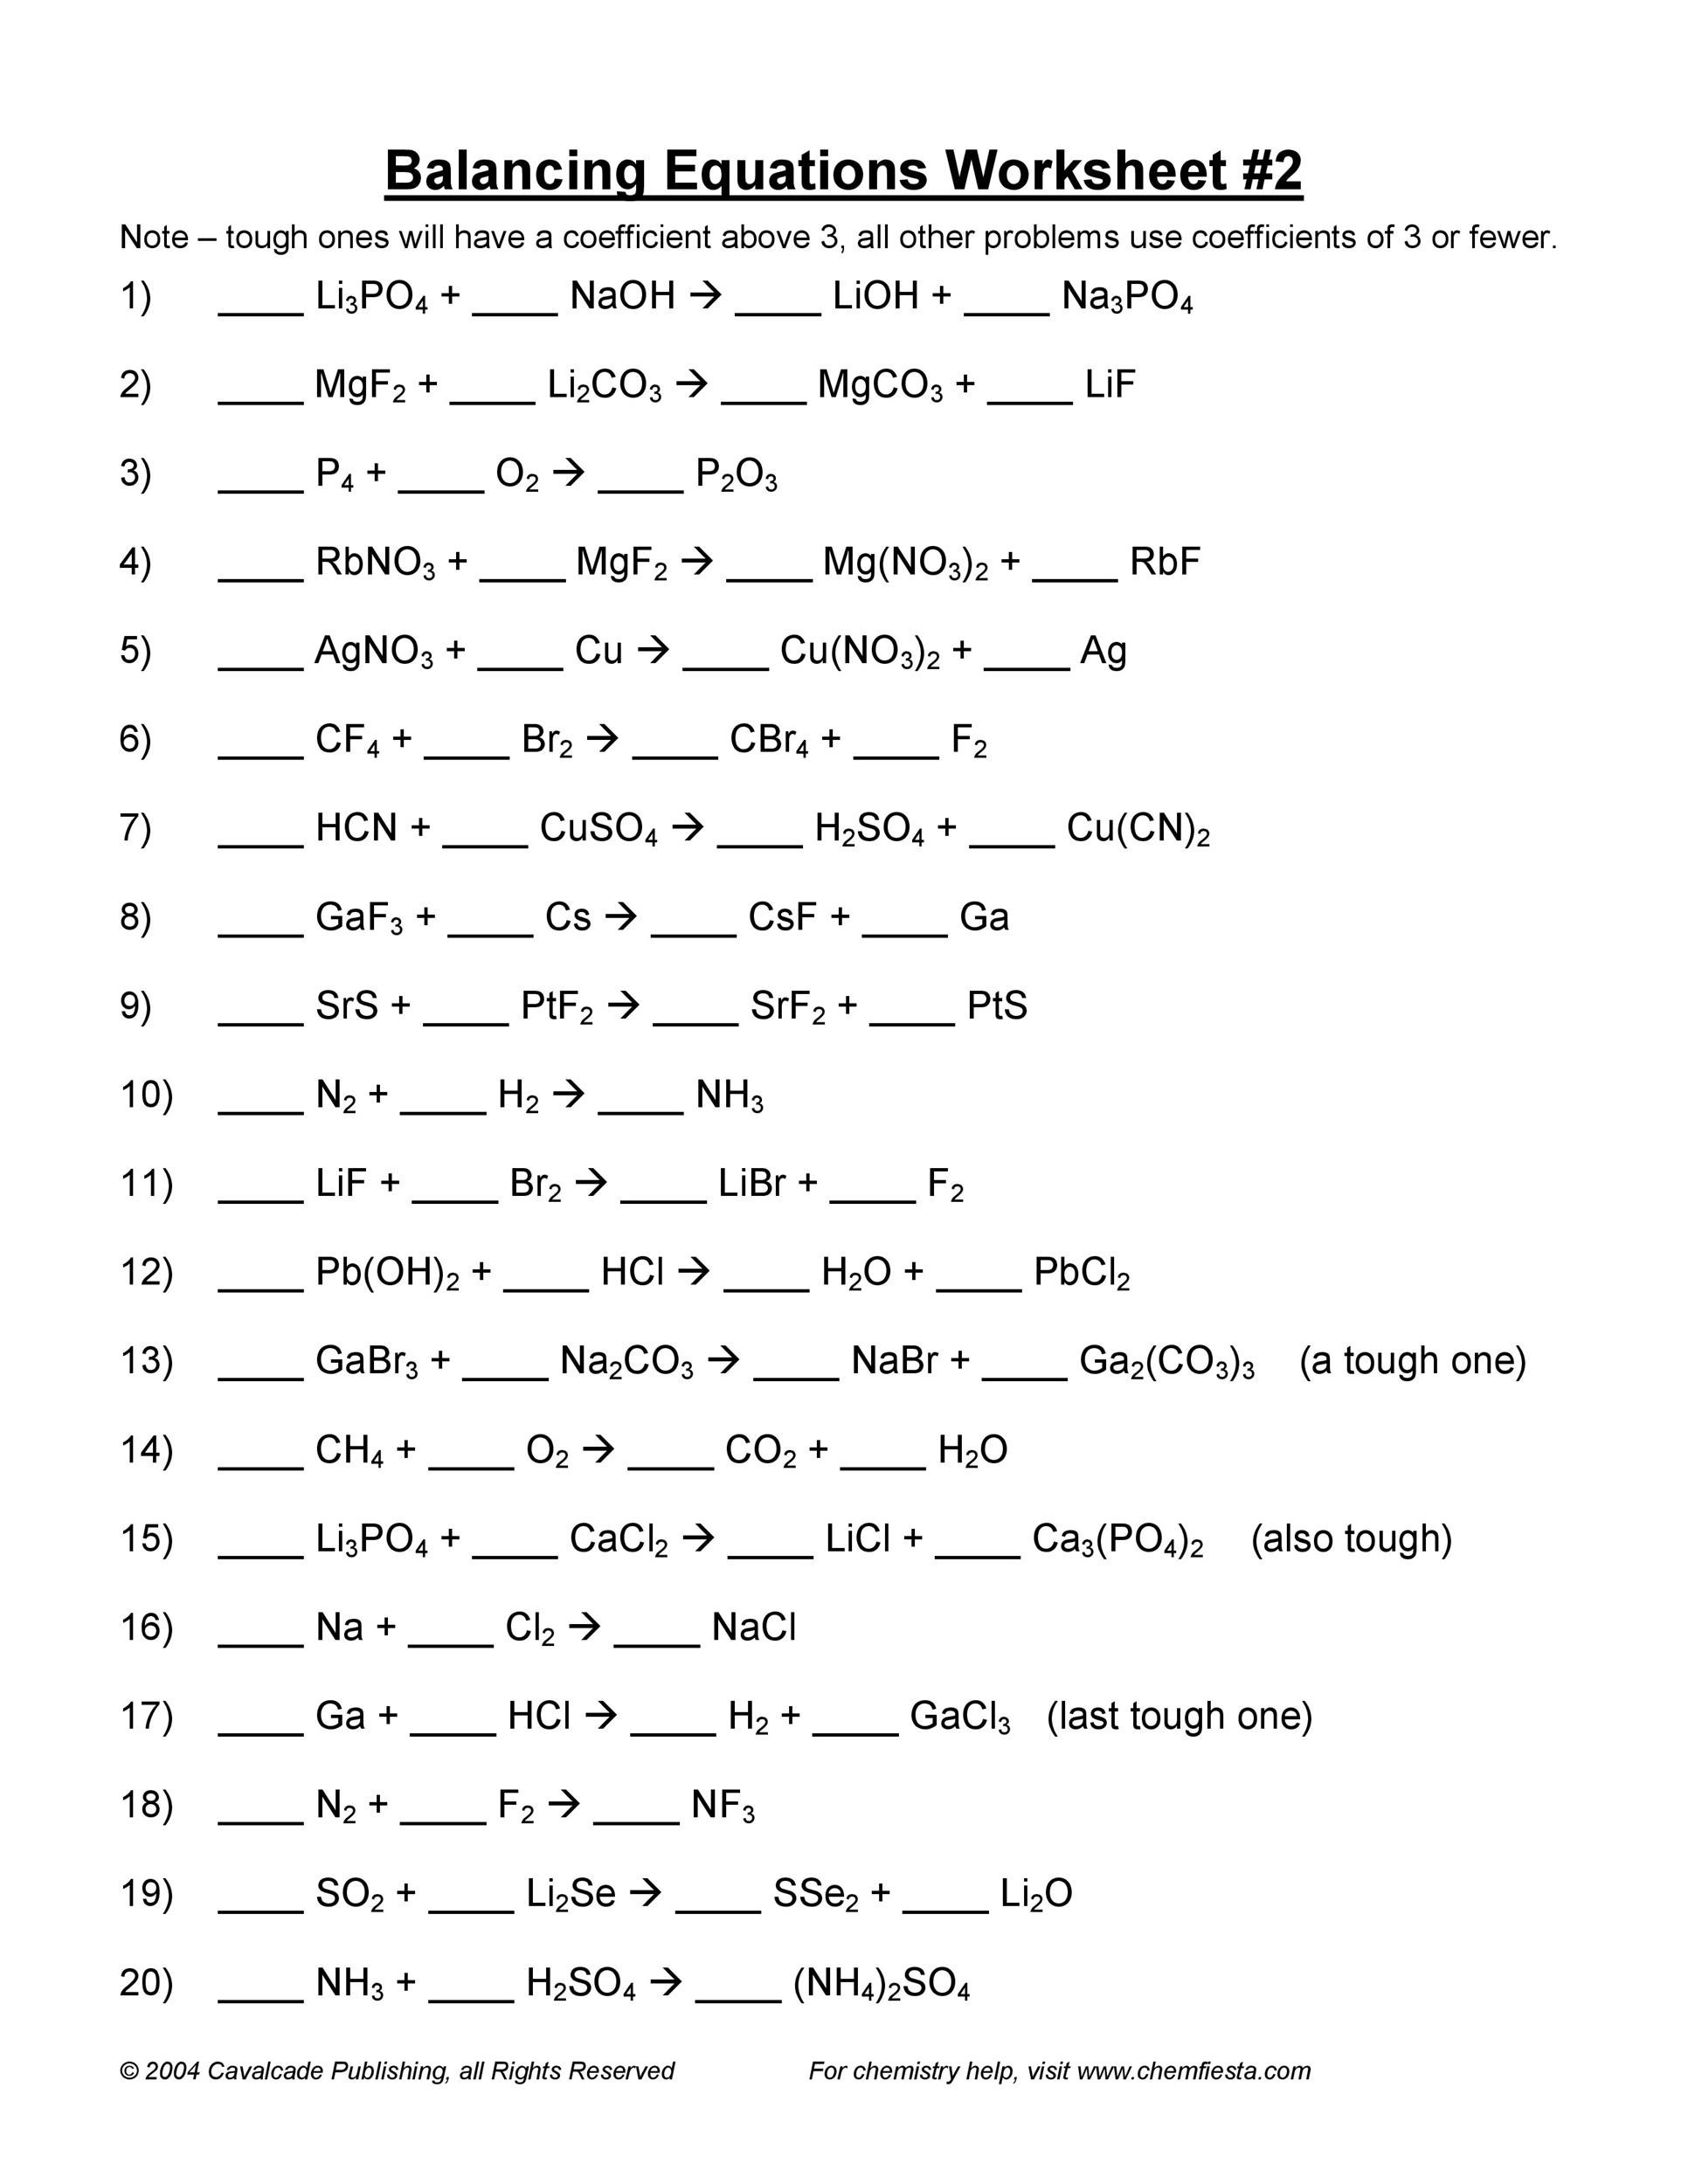 32 Balancing Equations Worksheet Answers - Worksheet ...